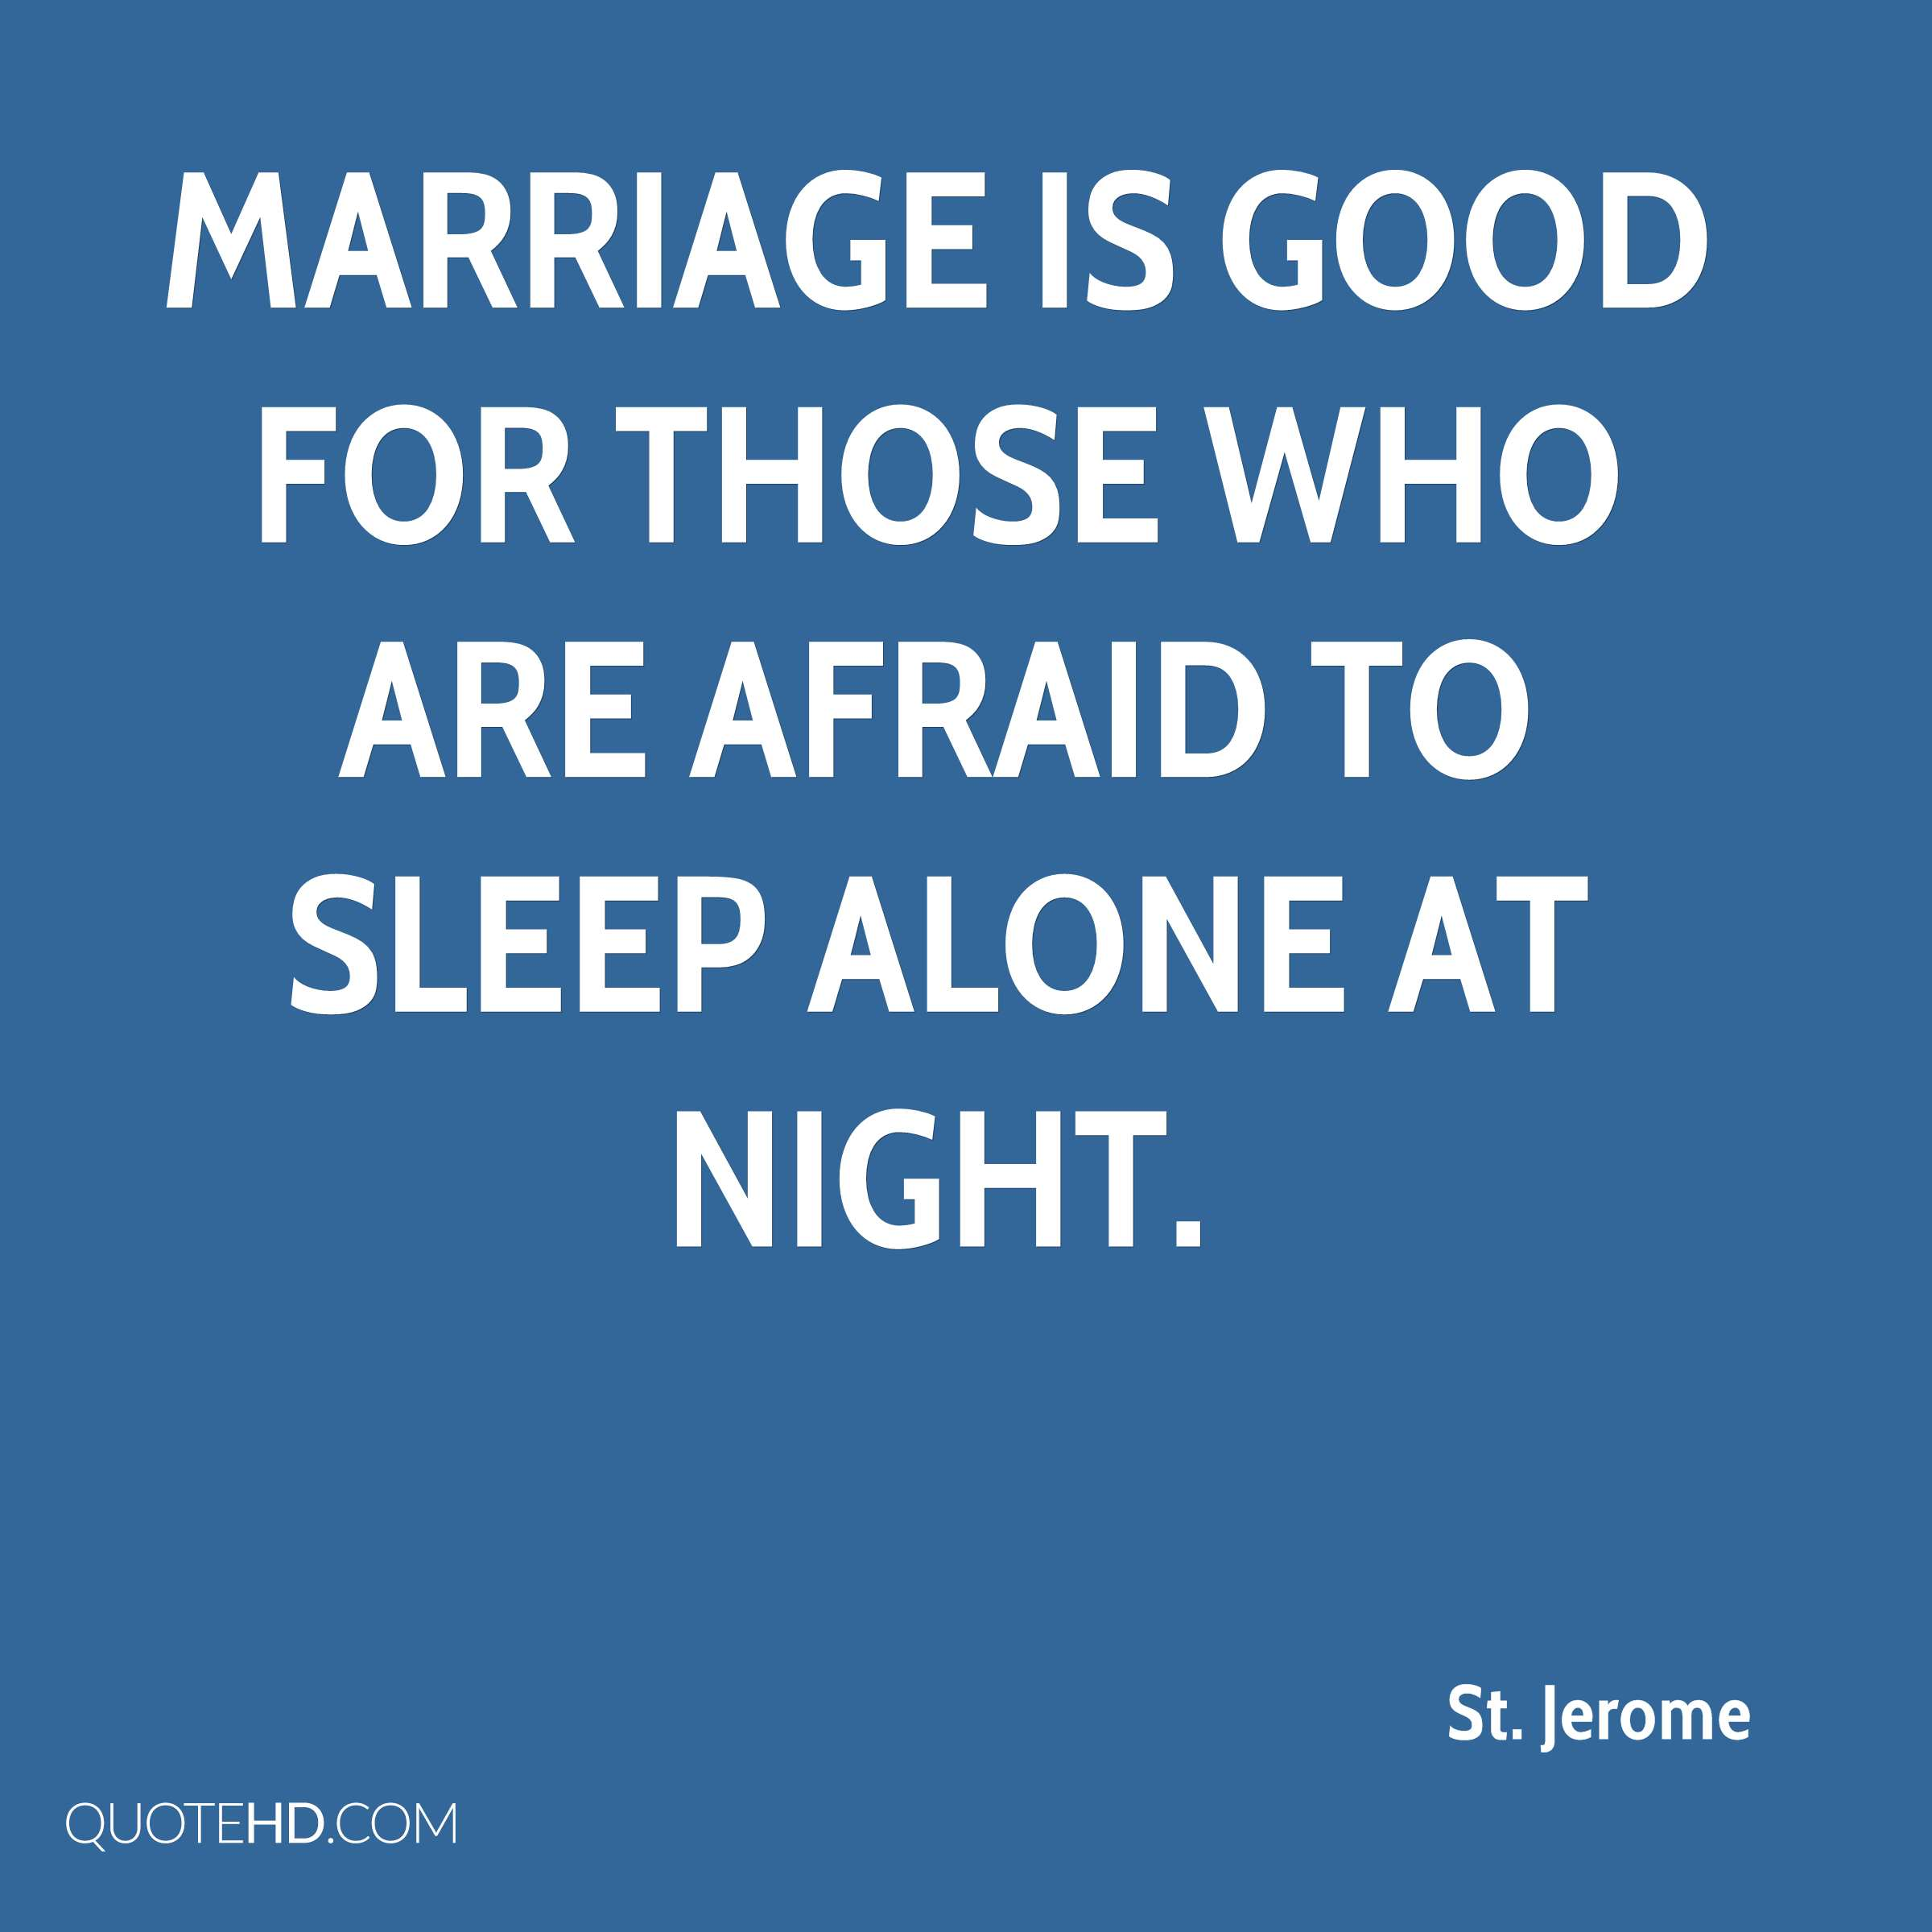 Marriage is good for those who are afraid to sleep alone at night.